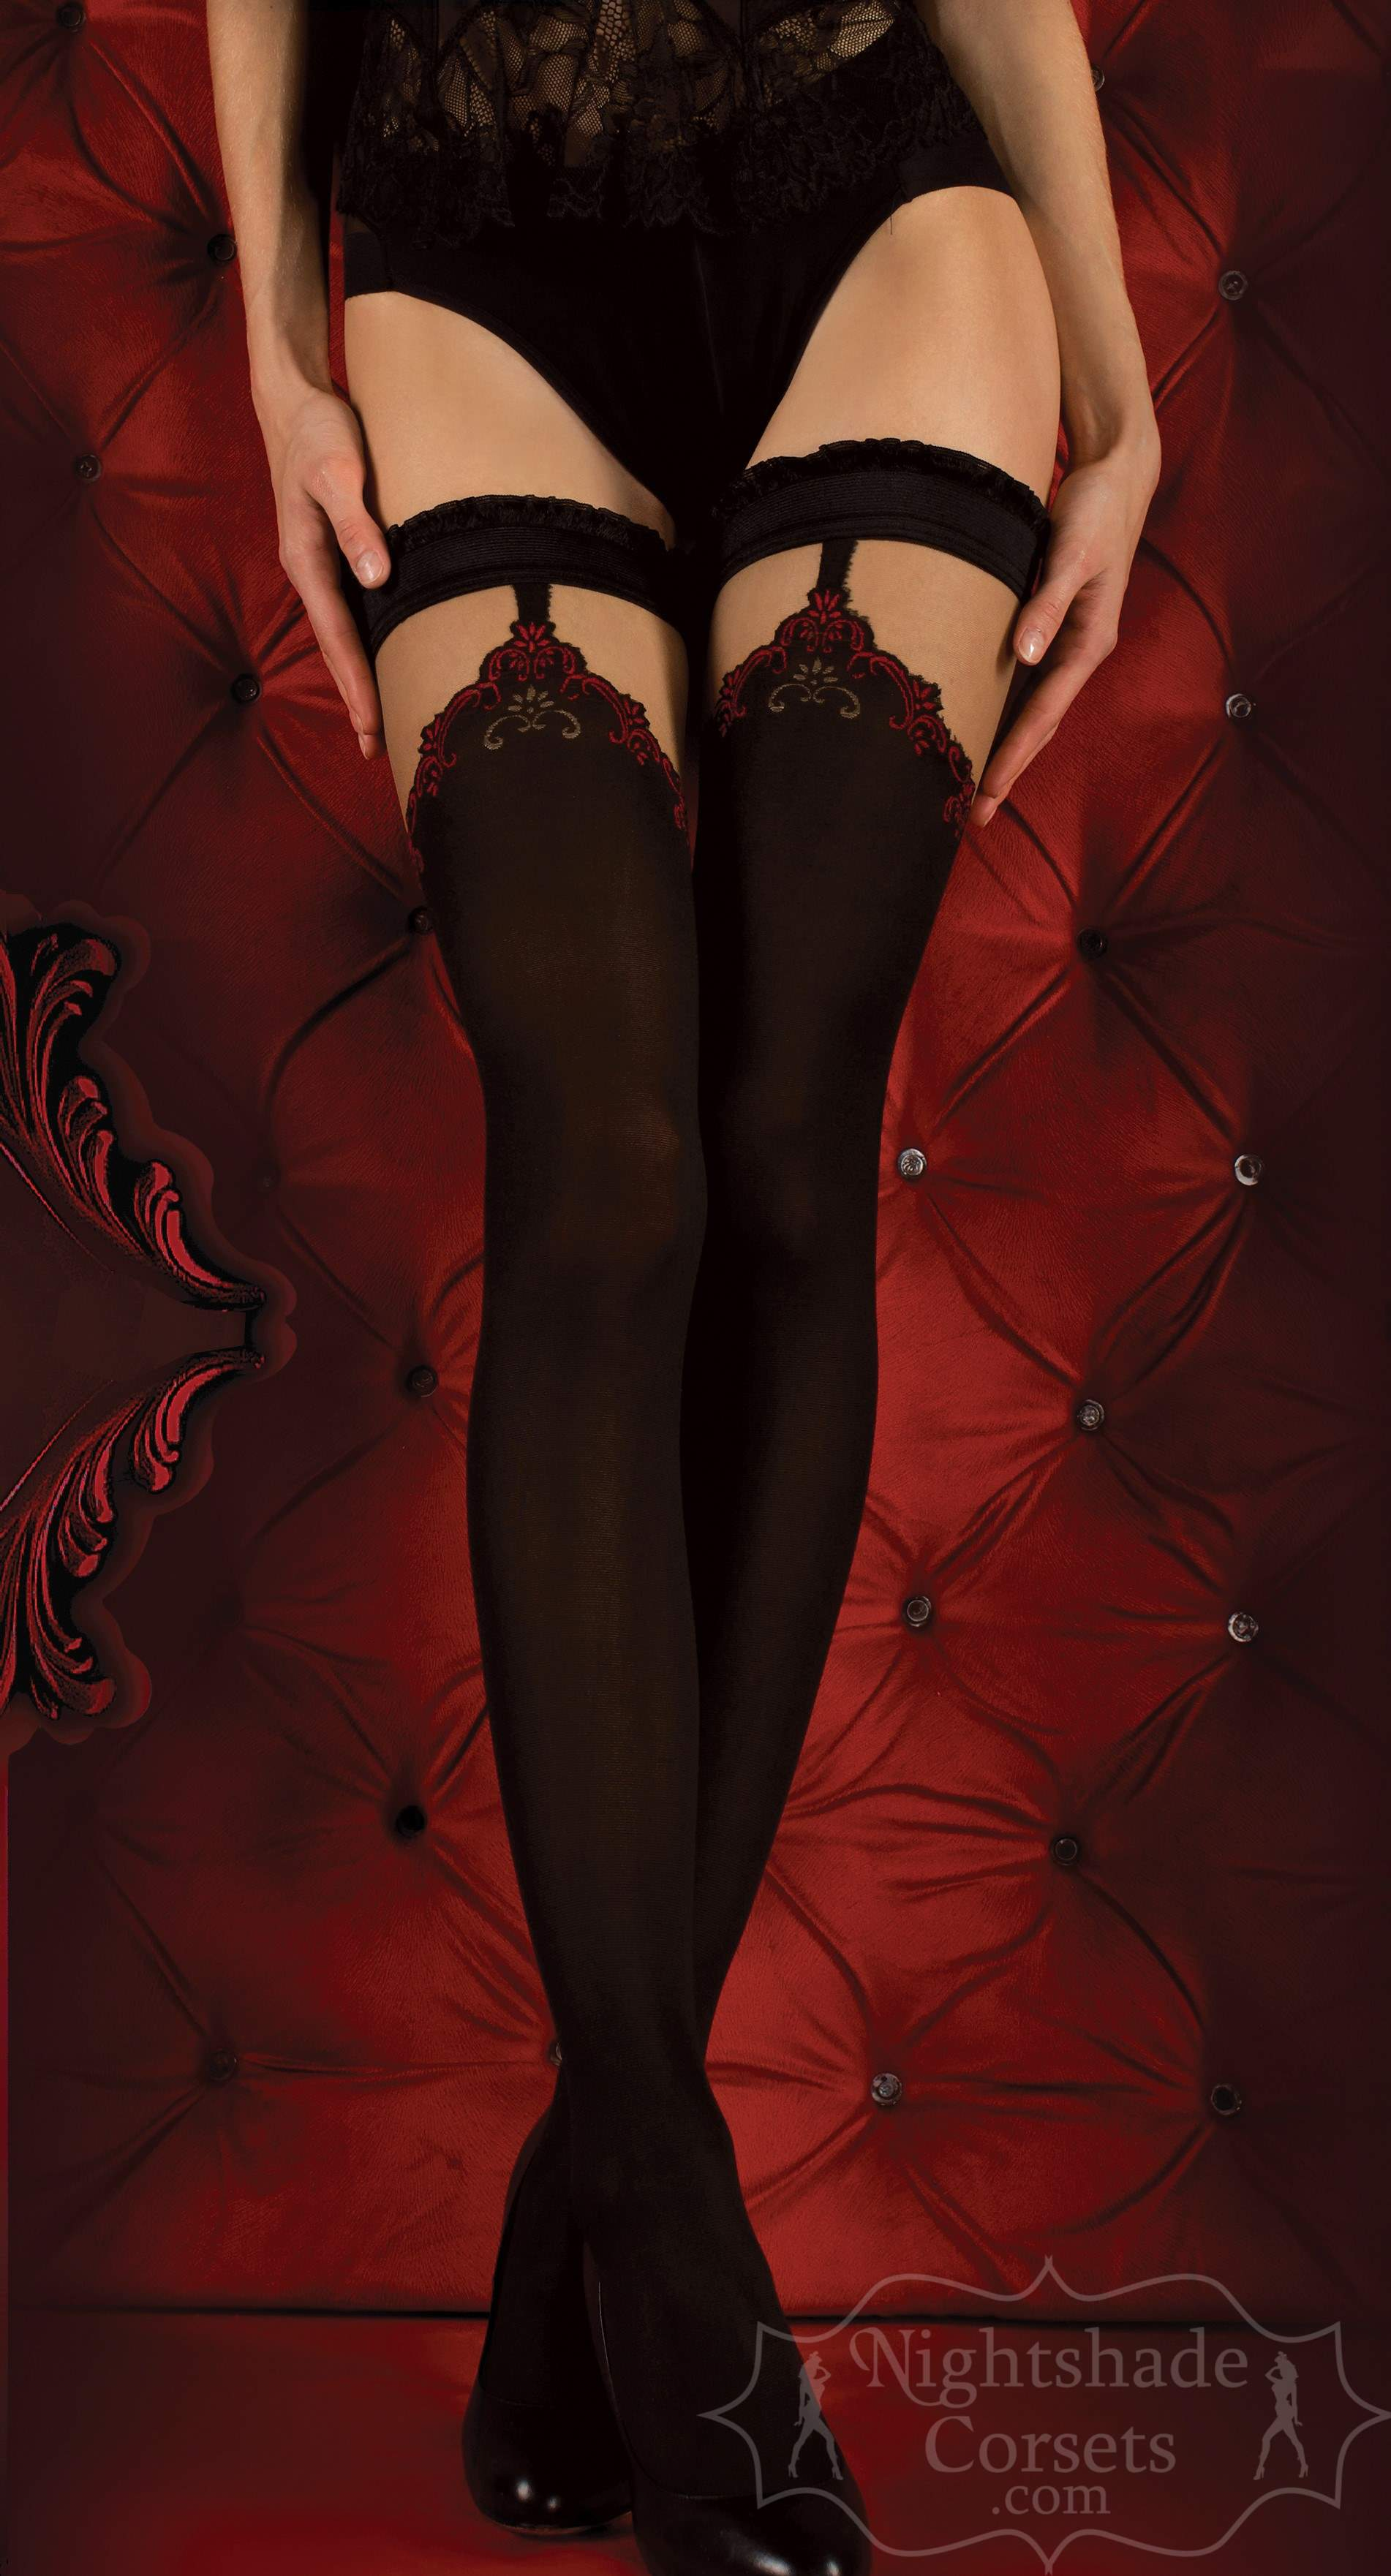 European-made stay-up stockings 0345 Edmonton